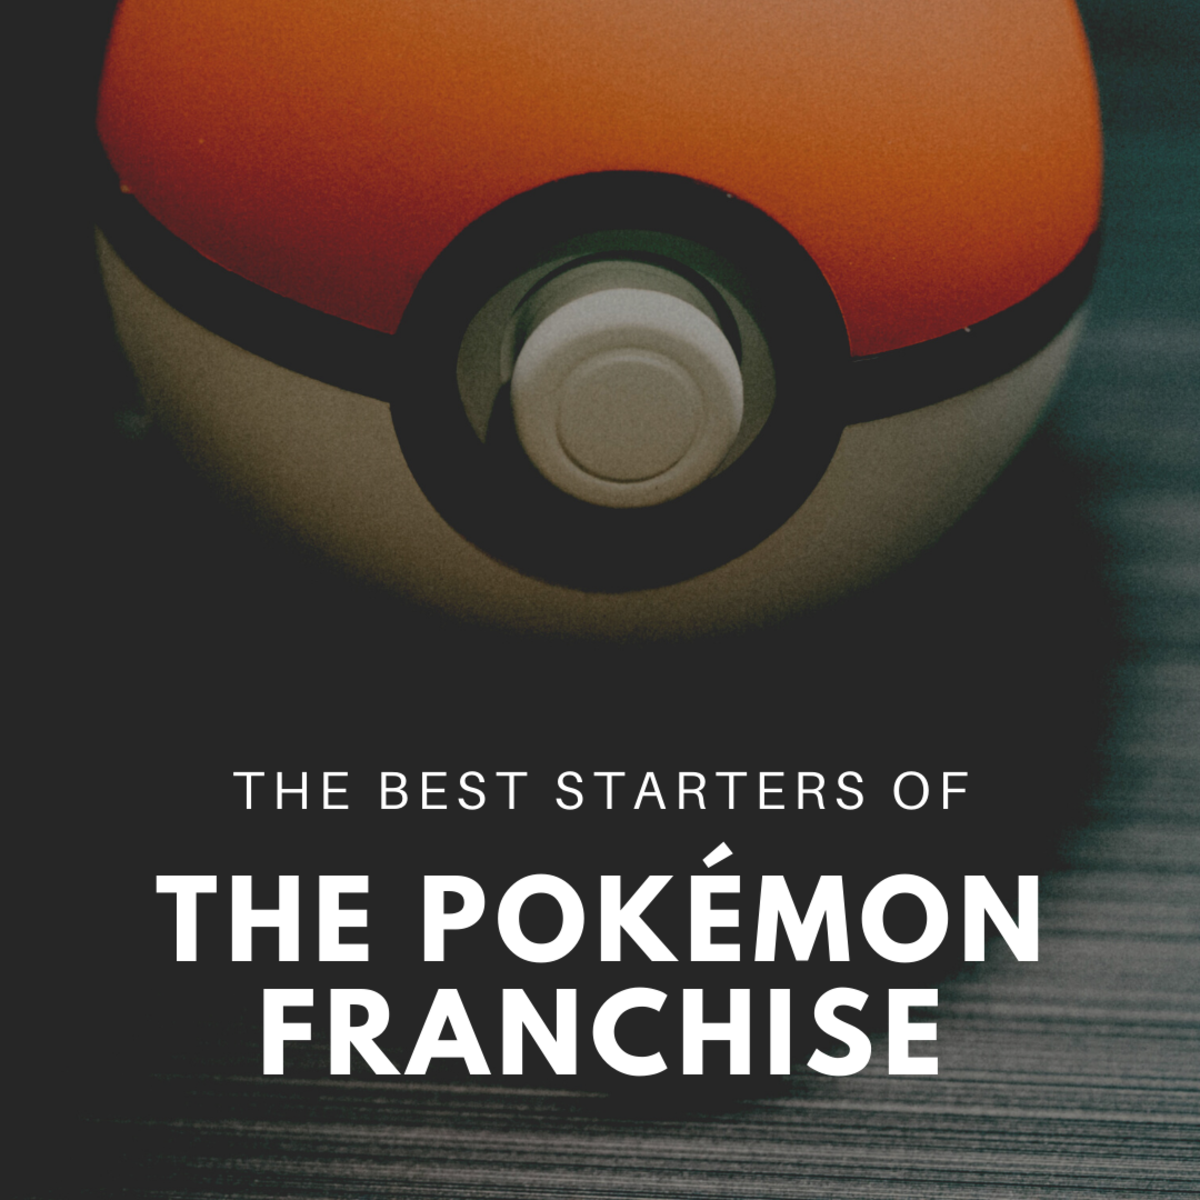 Find out which starters are the best of the best!